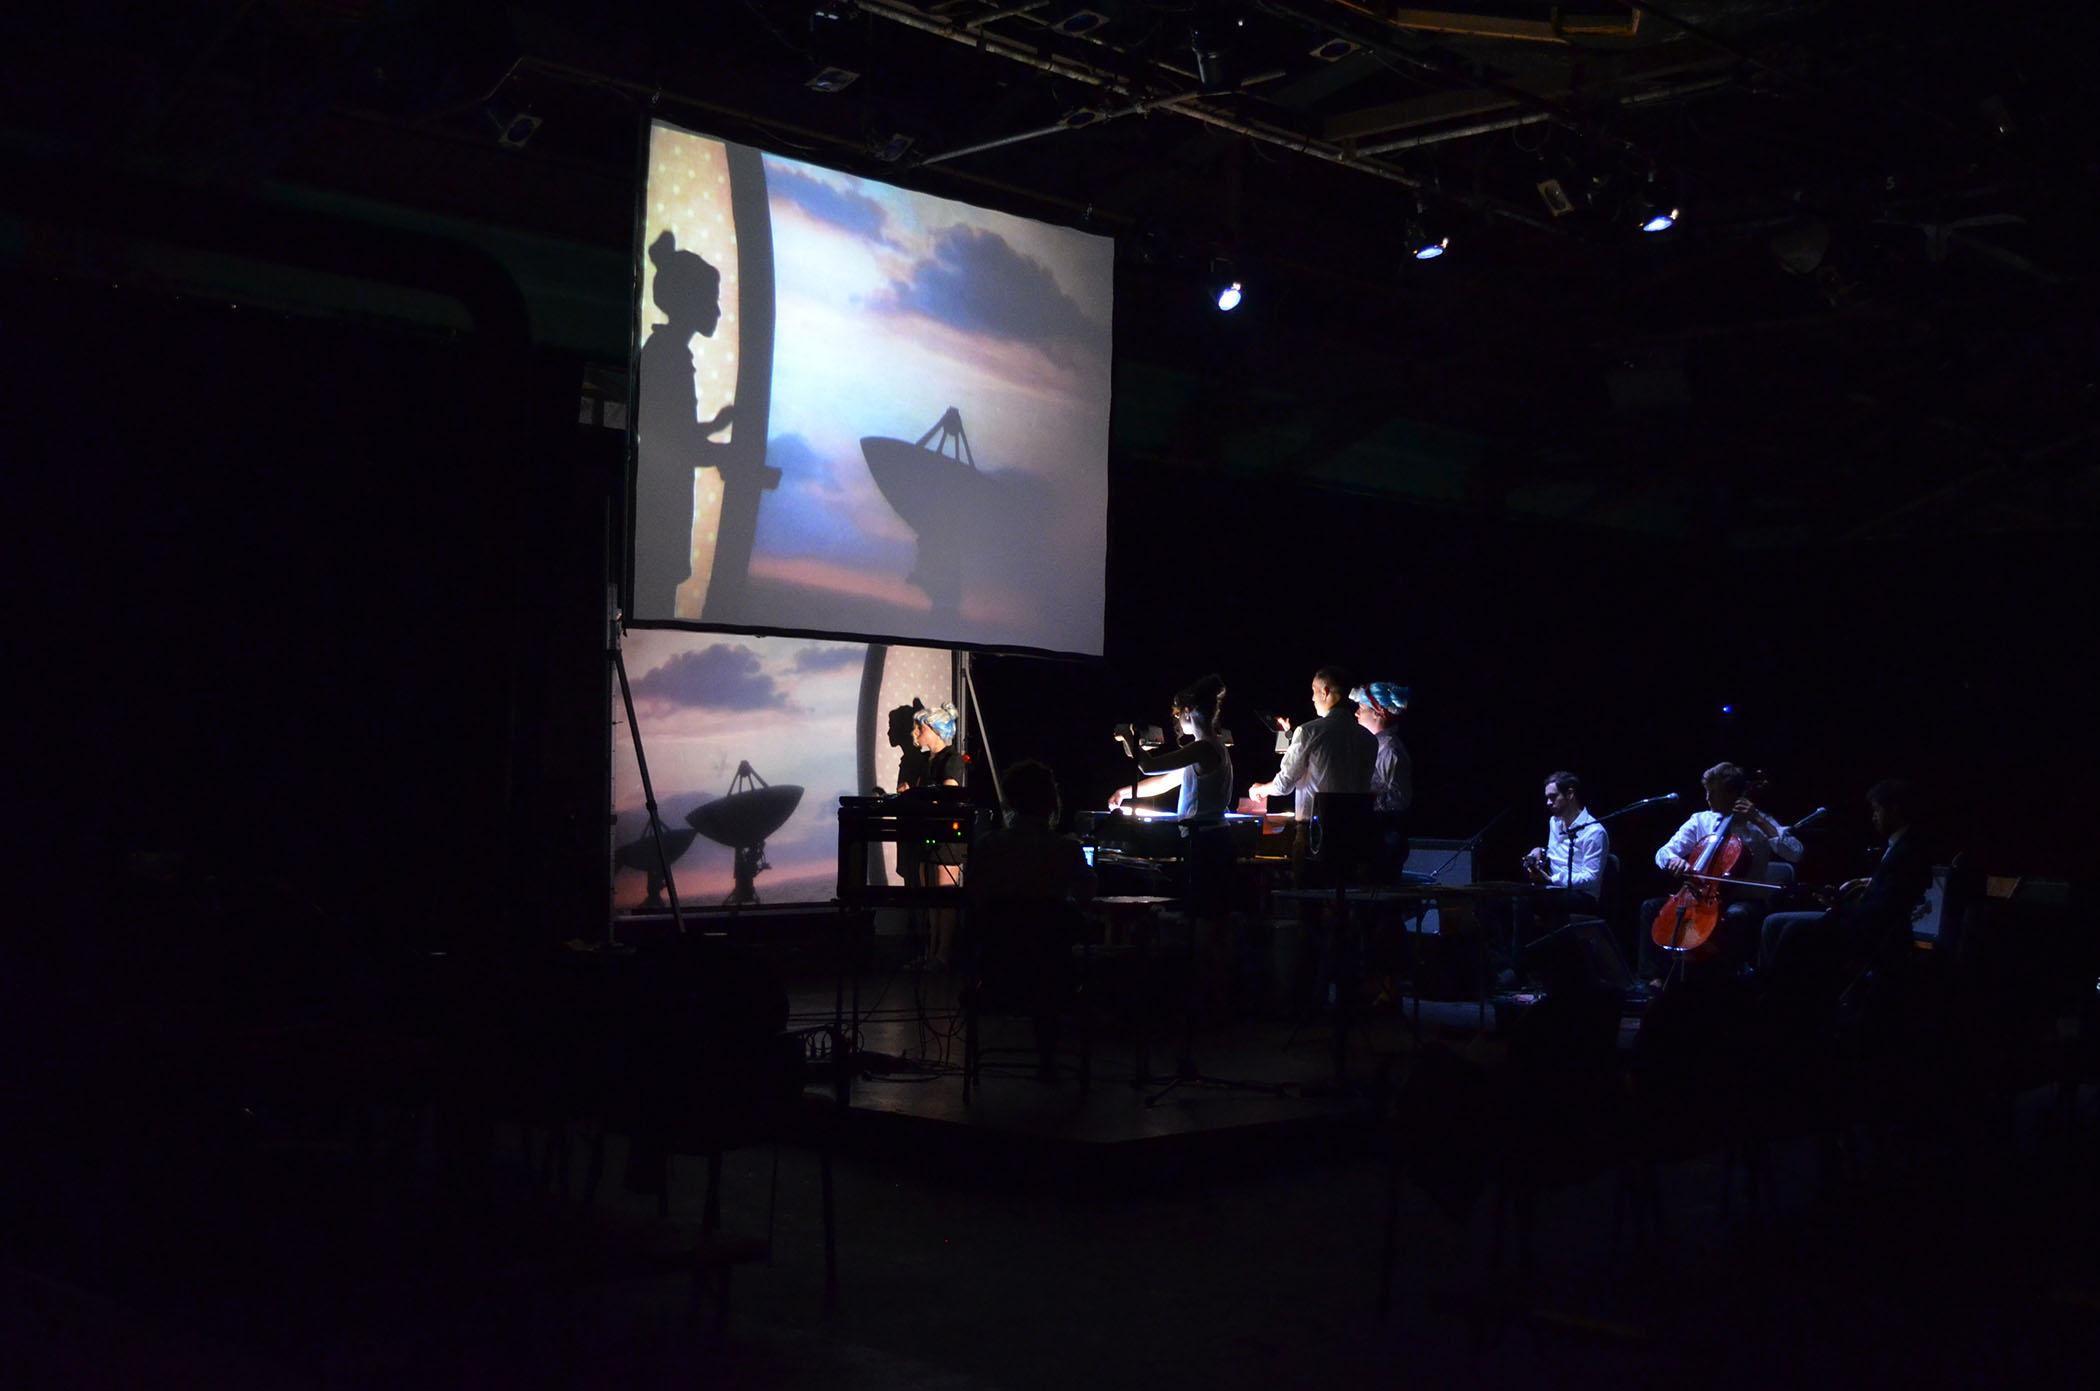 On a dark stage, technicians use overhead projectors to cast ta woman's silhouette onto an image of a sunset that appears in the background.